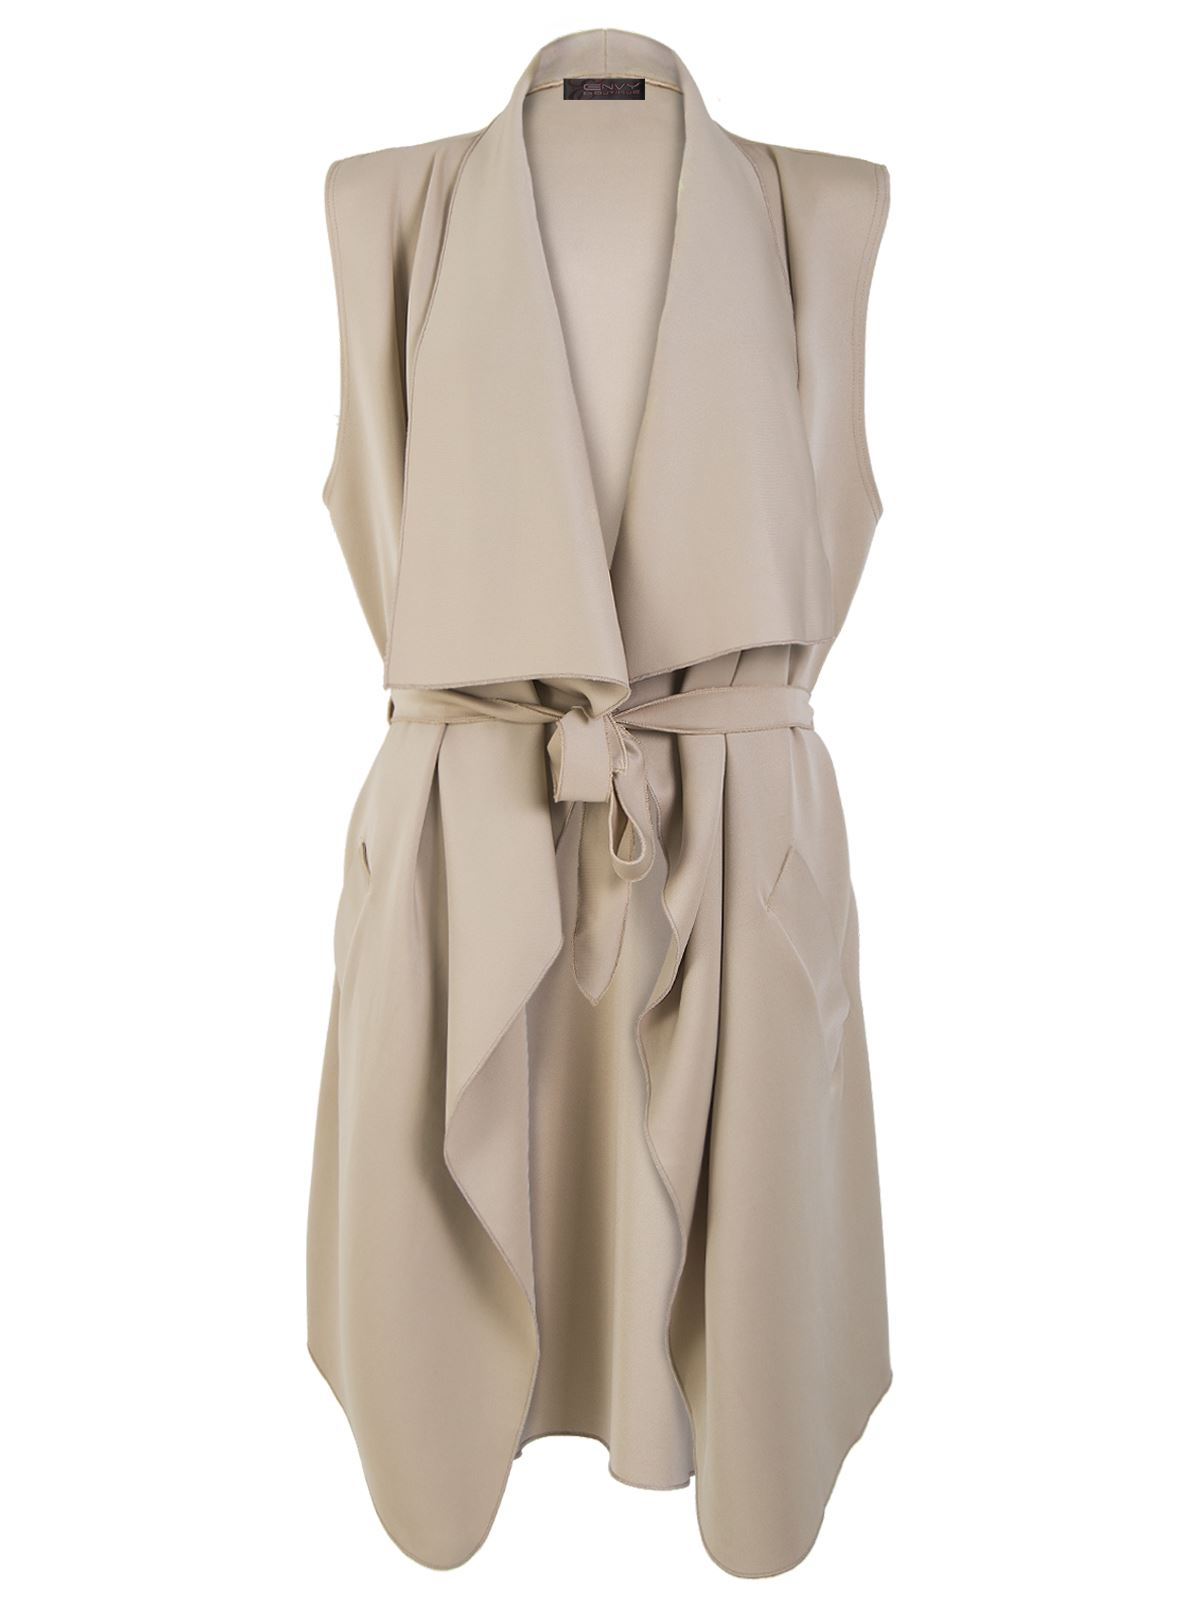 LADIES BELTED SLEEVELESS WRAP OVER WATERFALL CARDIGAN COAT CELEB ...